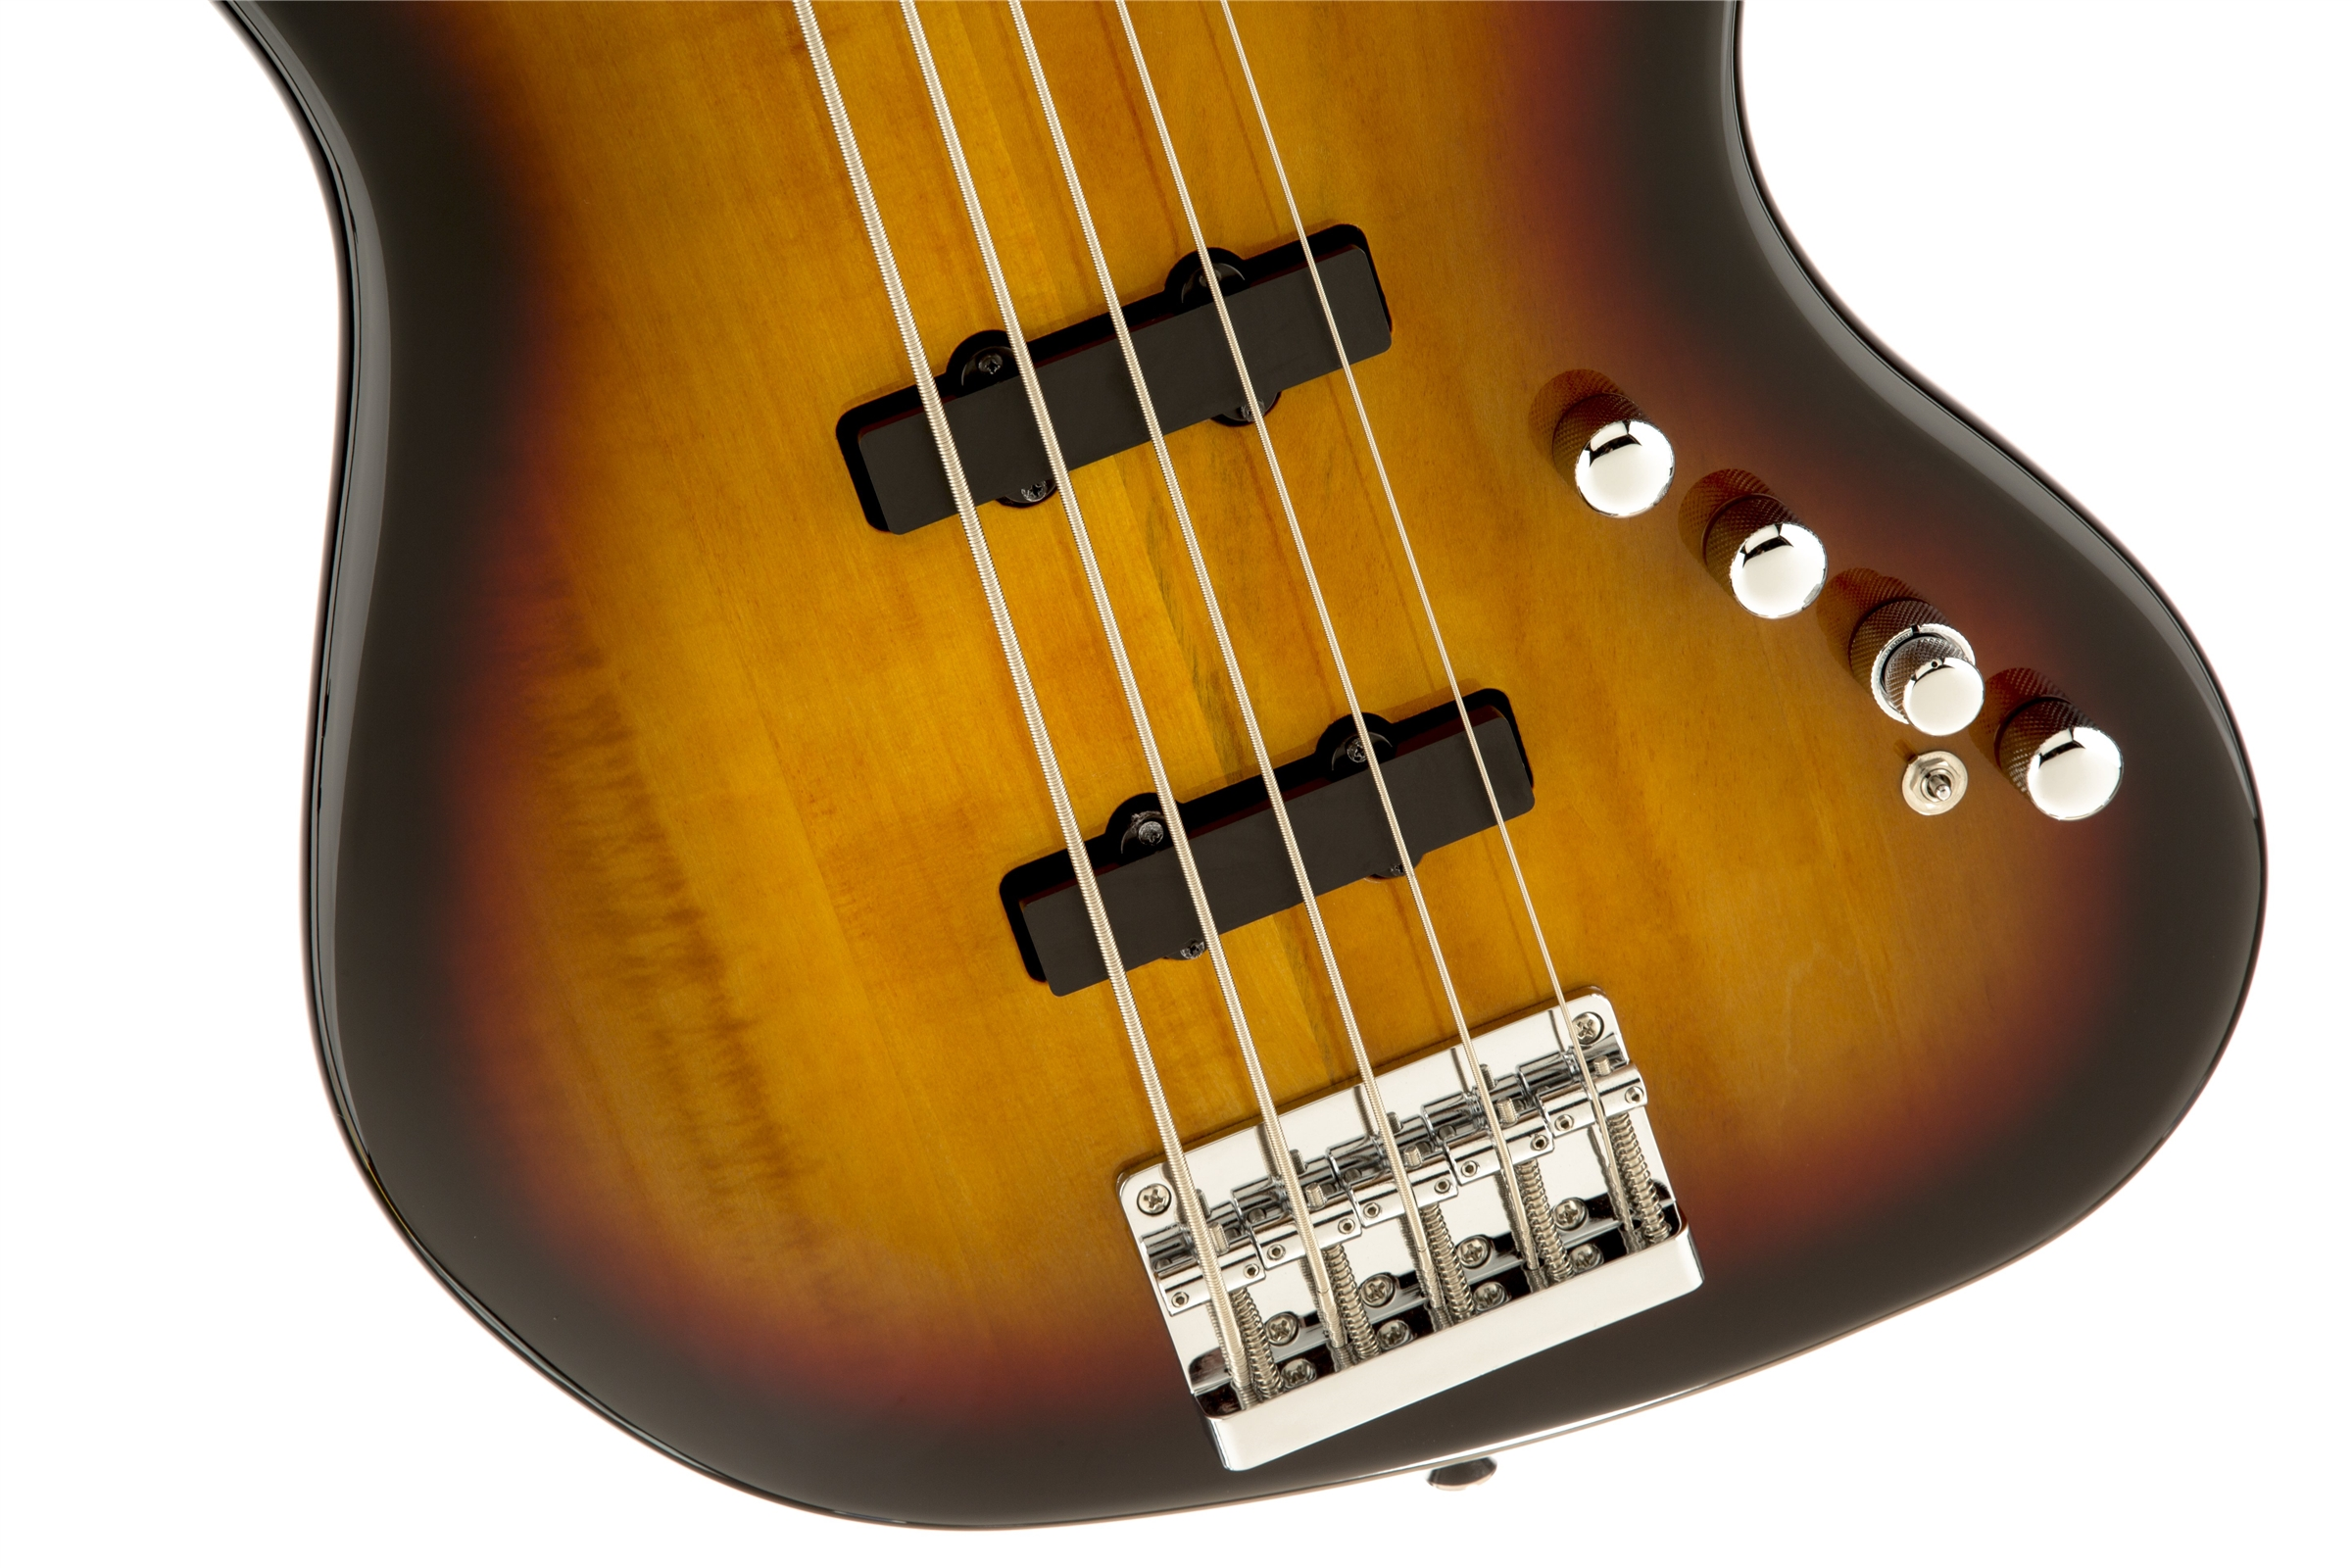 My eb bass squier vintage modified jazz bass - Deluxe Jazz Bass Active V 5 String 3 Color Sunburst